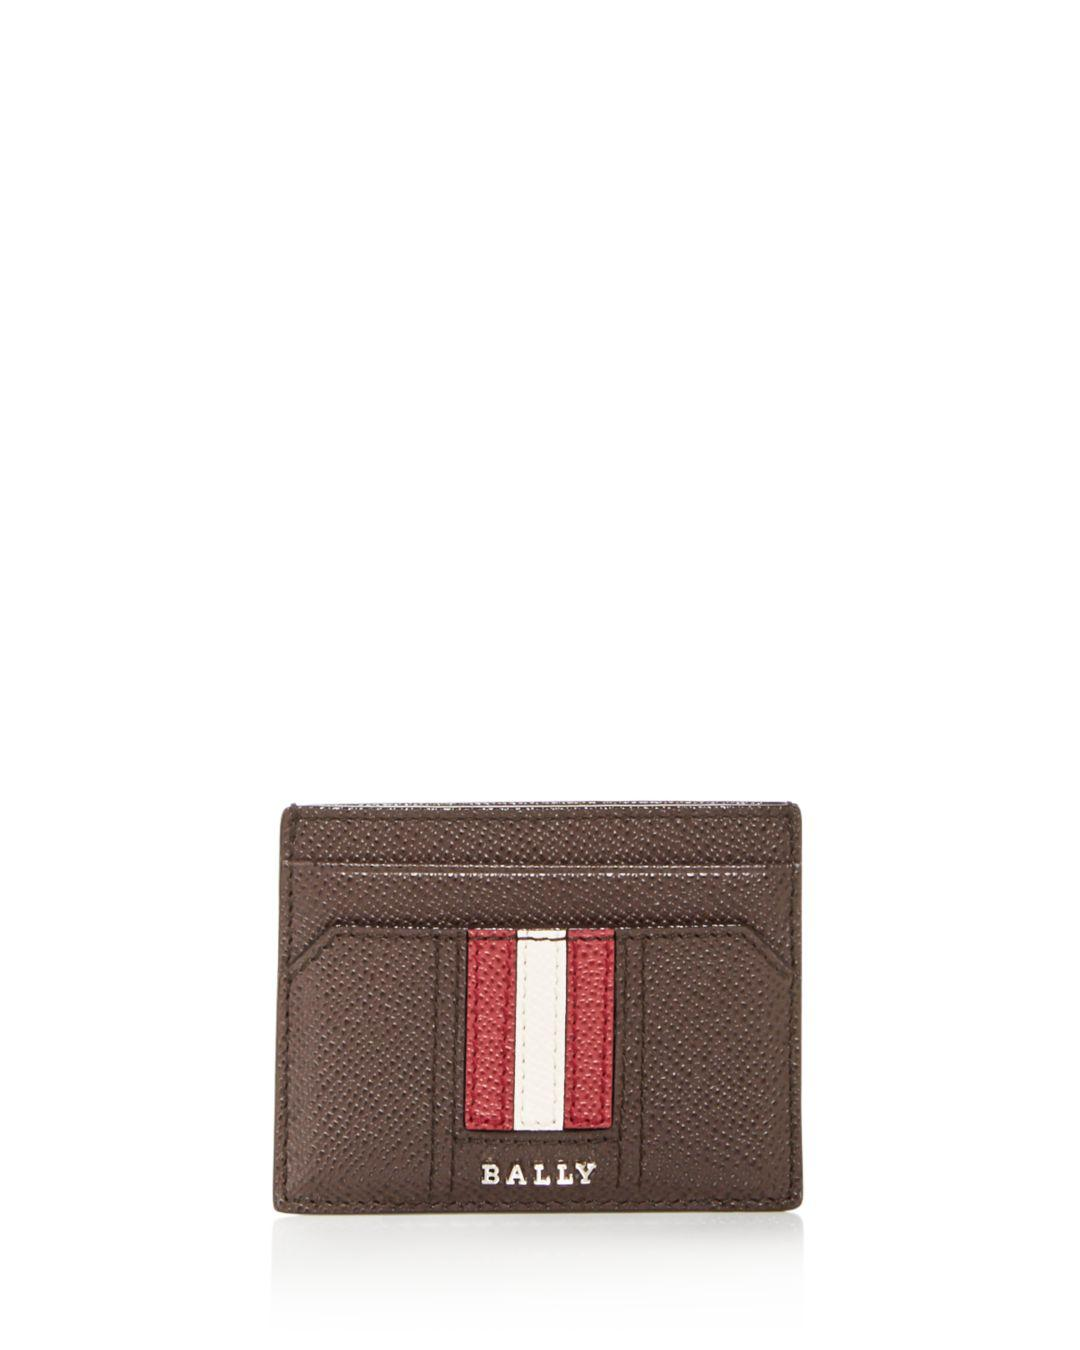 4139b8c368714 Bally - Brown Thar Leather Card Case for Men - Lyst. View fullscreen